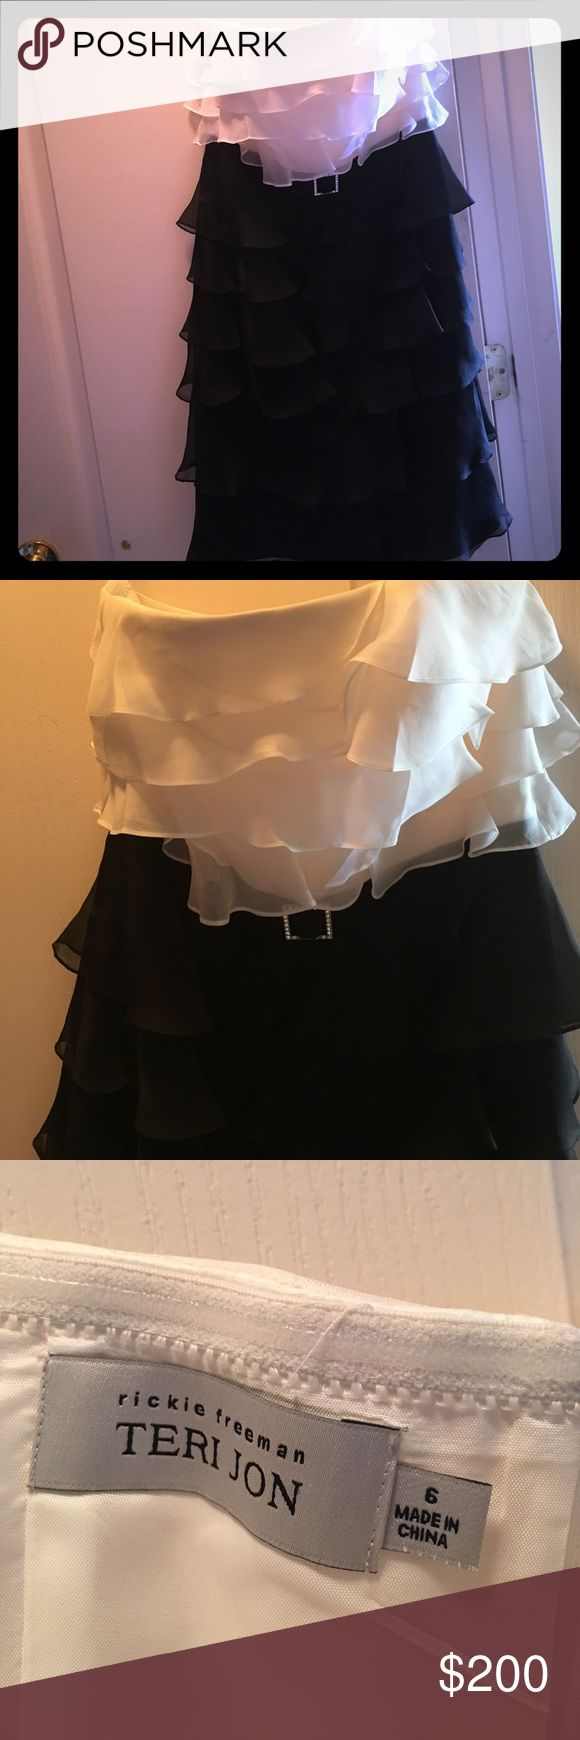 """Strapless black and white formal dress. Rickie Freeman, Teri Jon black and white ruffle strapless dress with sequin detailed """"belt"""" at waist. Stored in smoke free home in garment bag. Worn once. Rickie Freeman Teri Jon Dresses Strapless"""